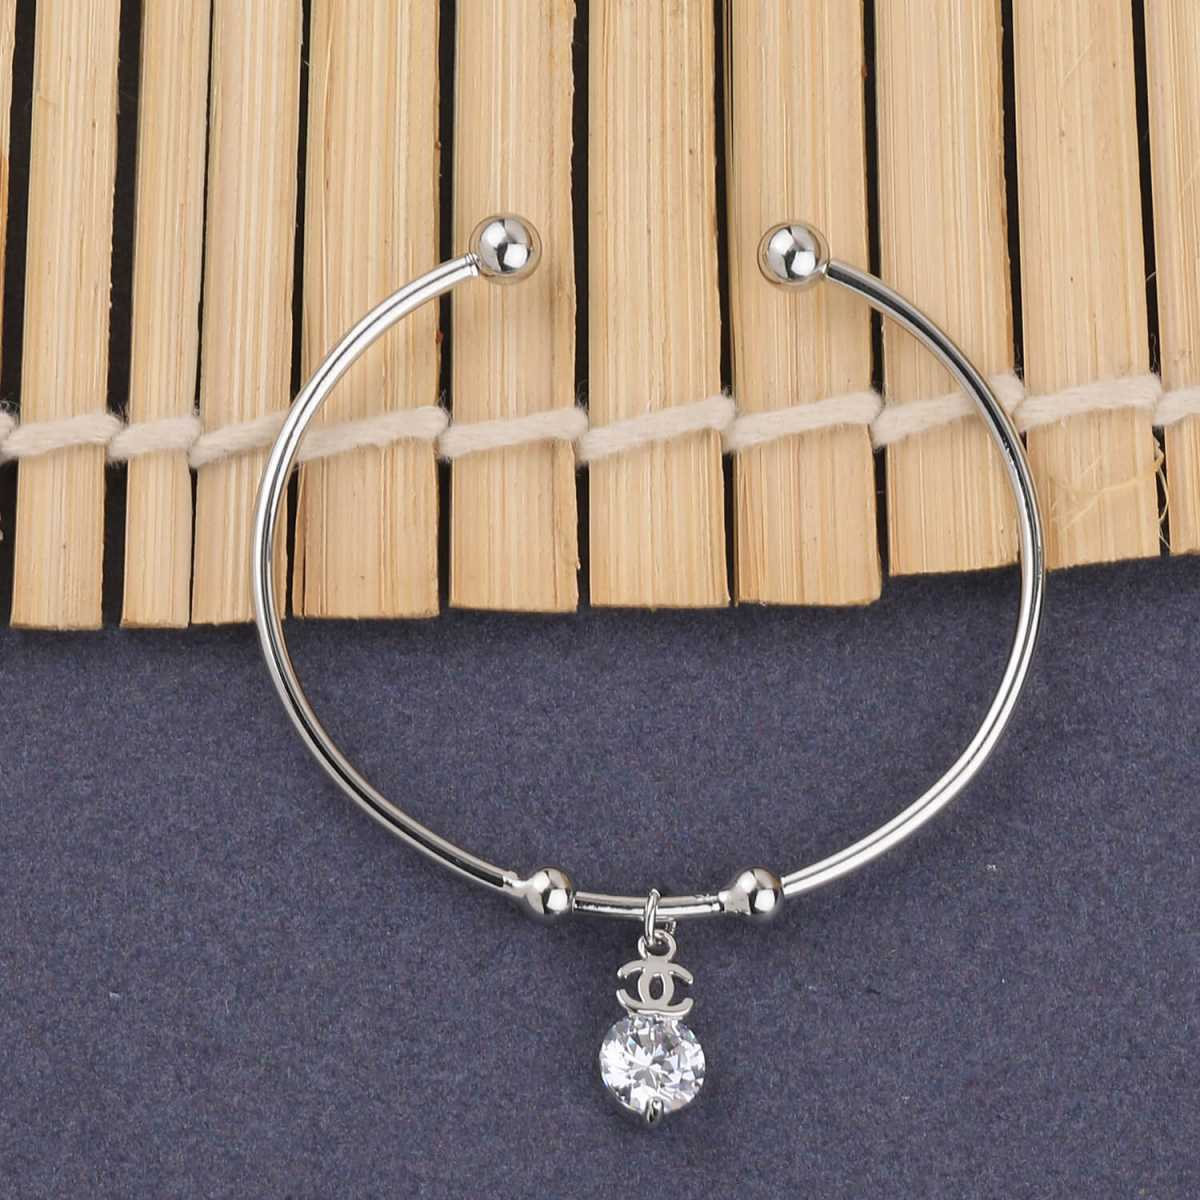 SILVER SHINE Charm Stylish Look Adjustable Bracelet With Diamond For Women Girls